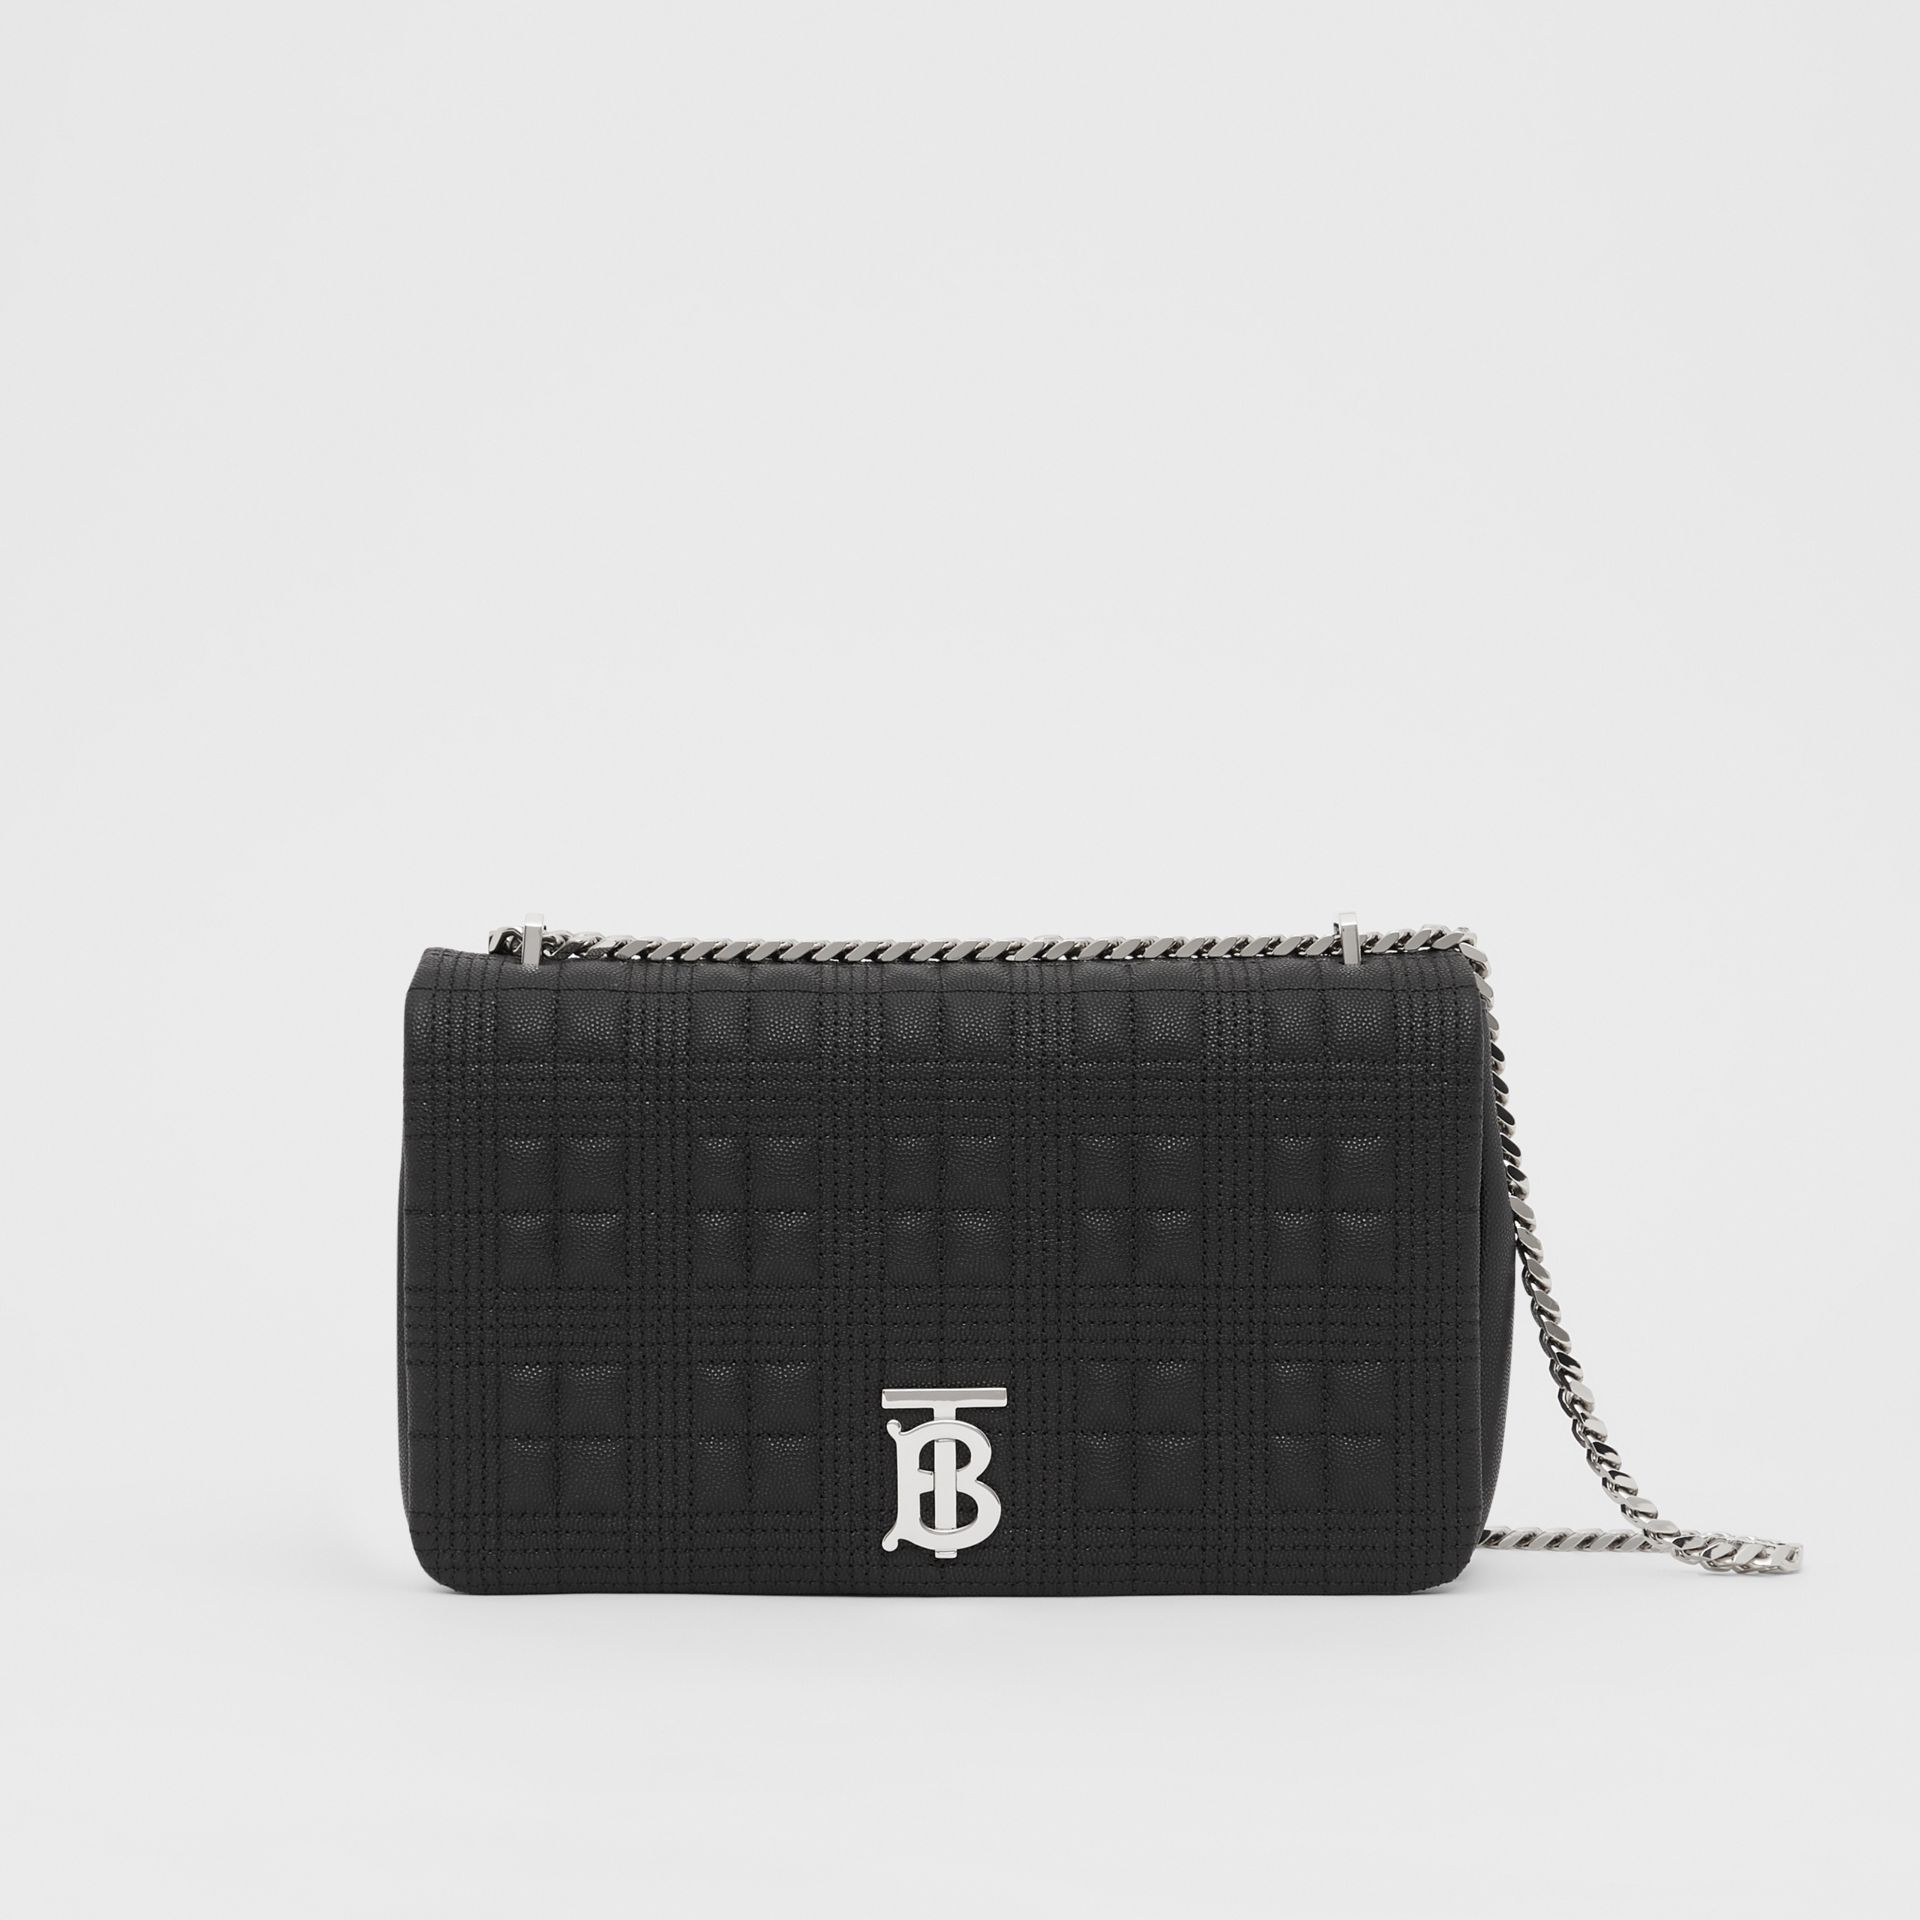 Medium Quilted Grainy Leather Lola Bag in Black - Women | Burberry Australia - gallery image 0